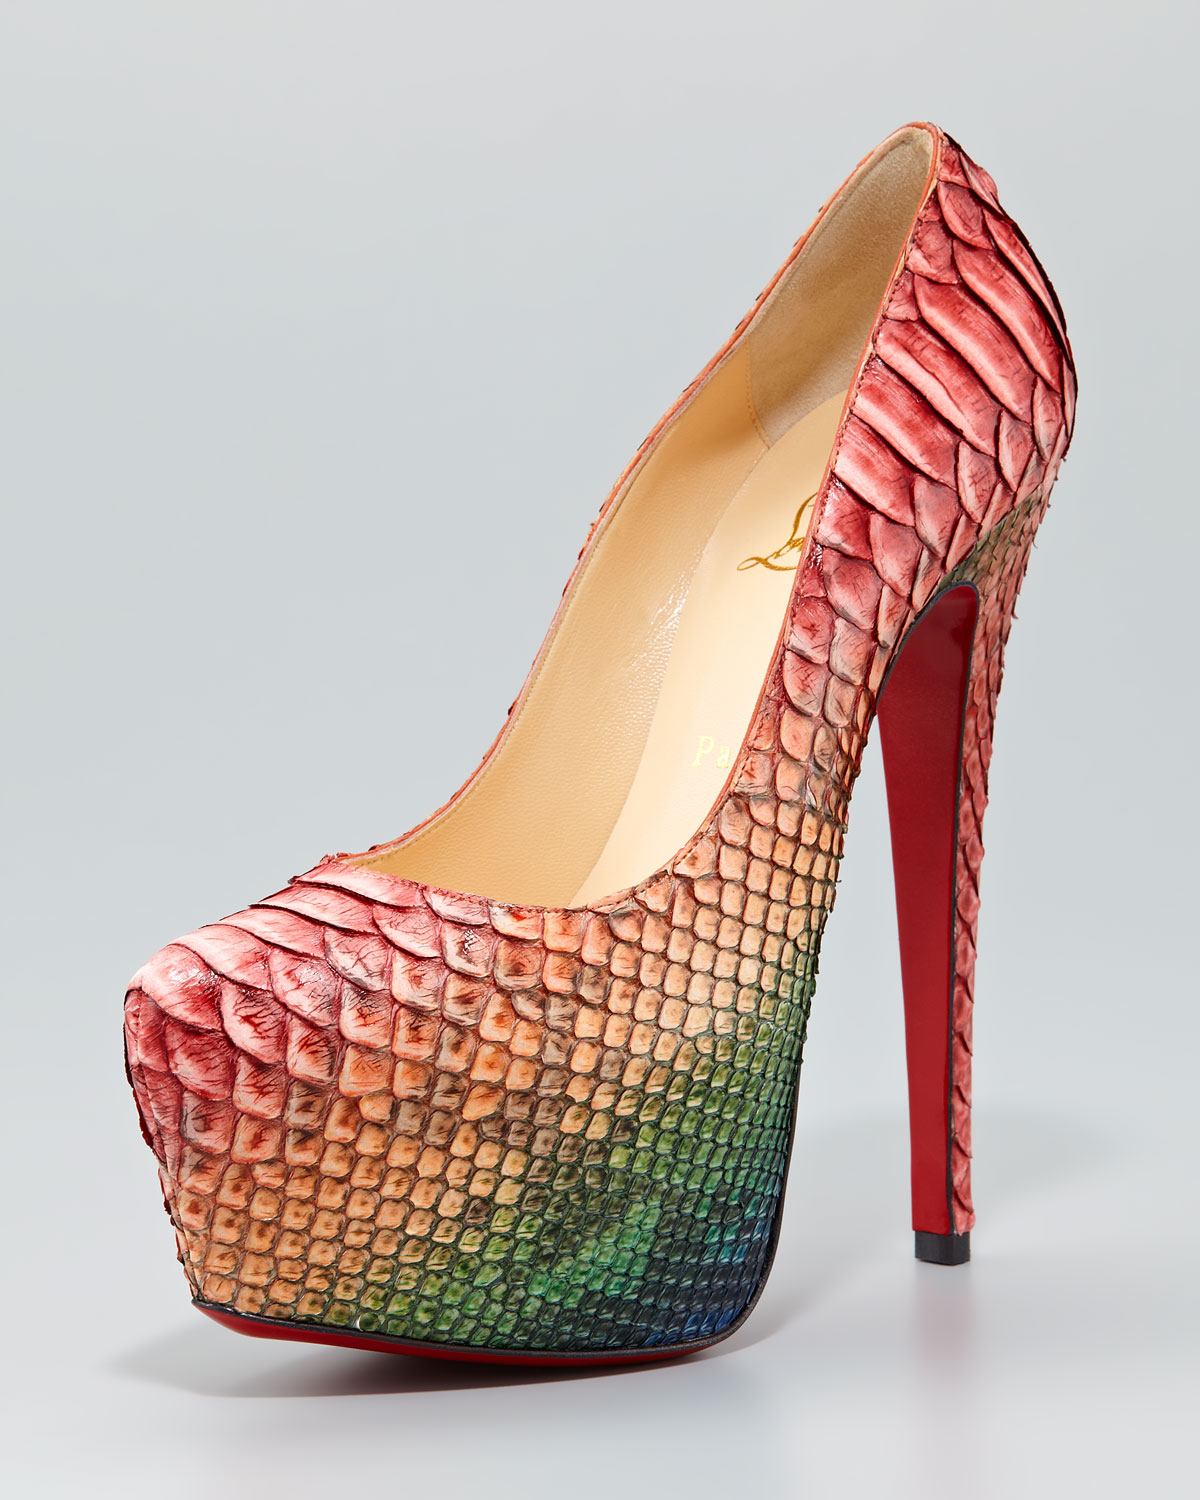 Christian Louboutin Embellished Python Pumps sale from china sale with credit card vbxh9N0